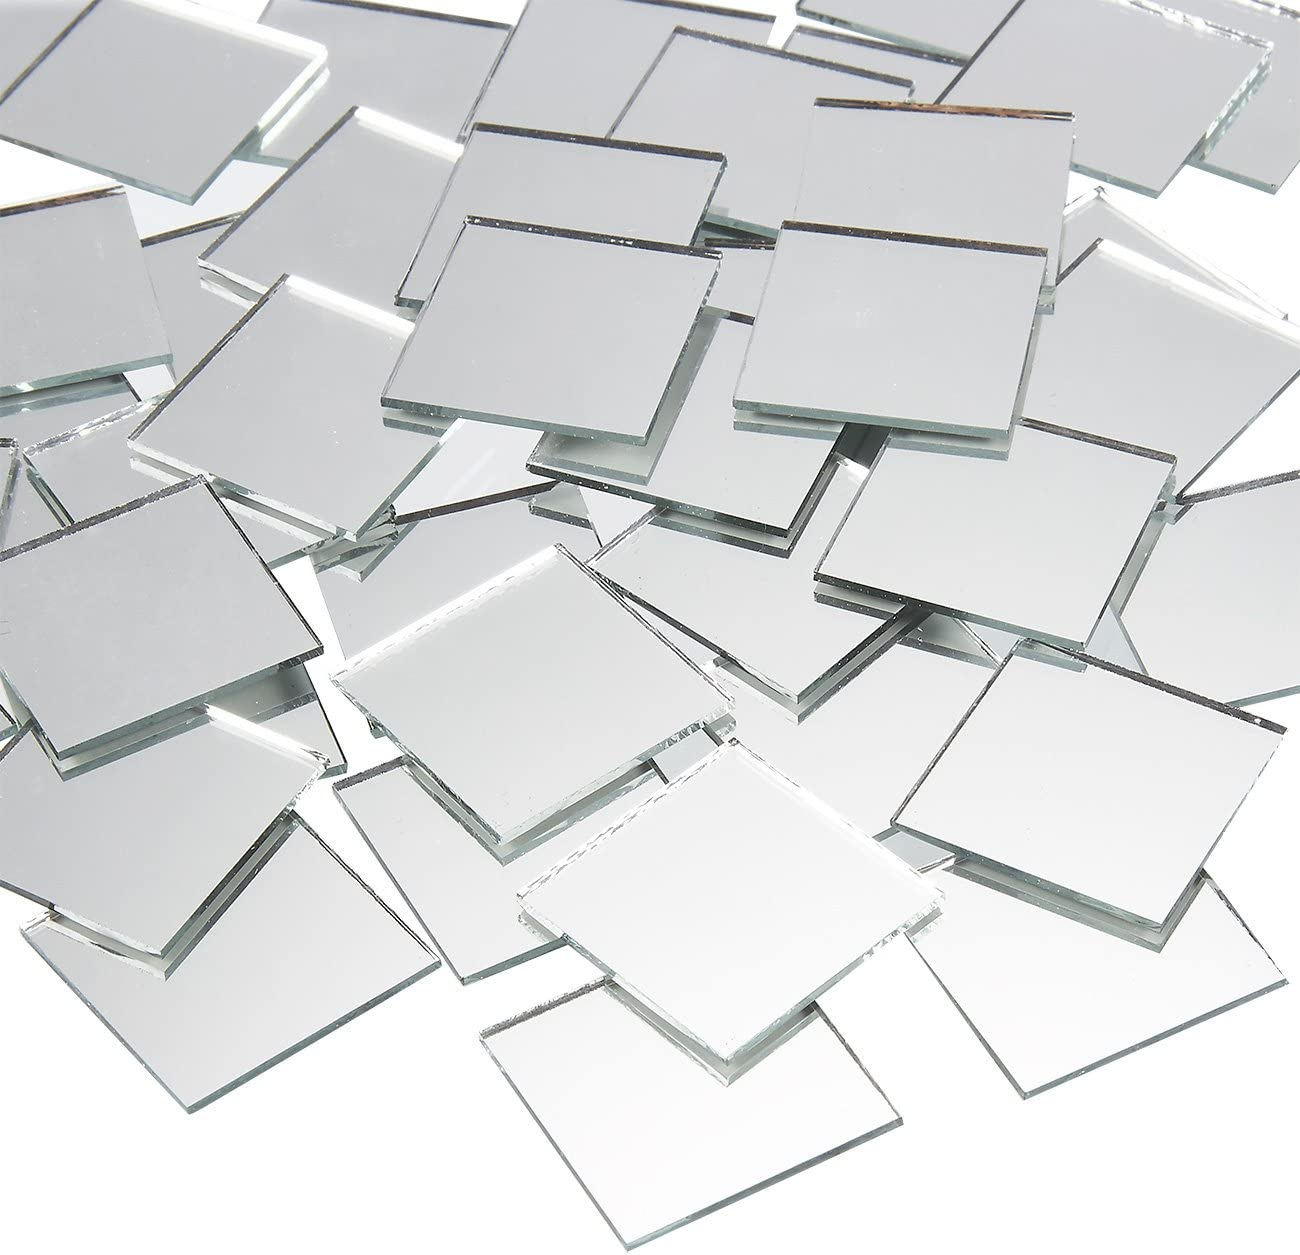 Juvale Square Mirror Tiles, Arts and Crafts Supplies (1 x 1 in, 120-Pack)